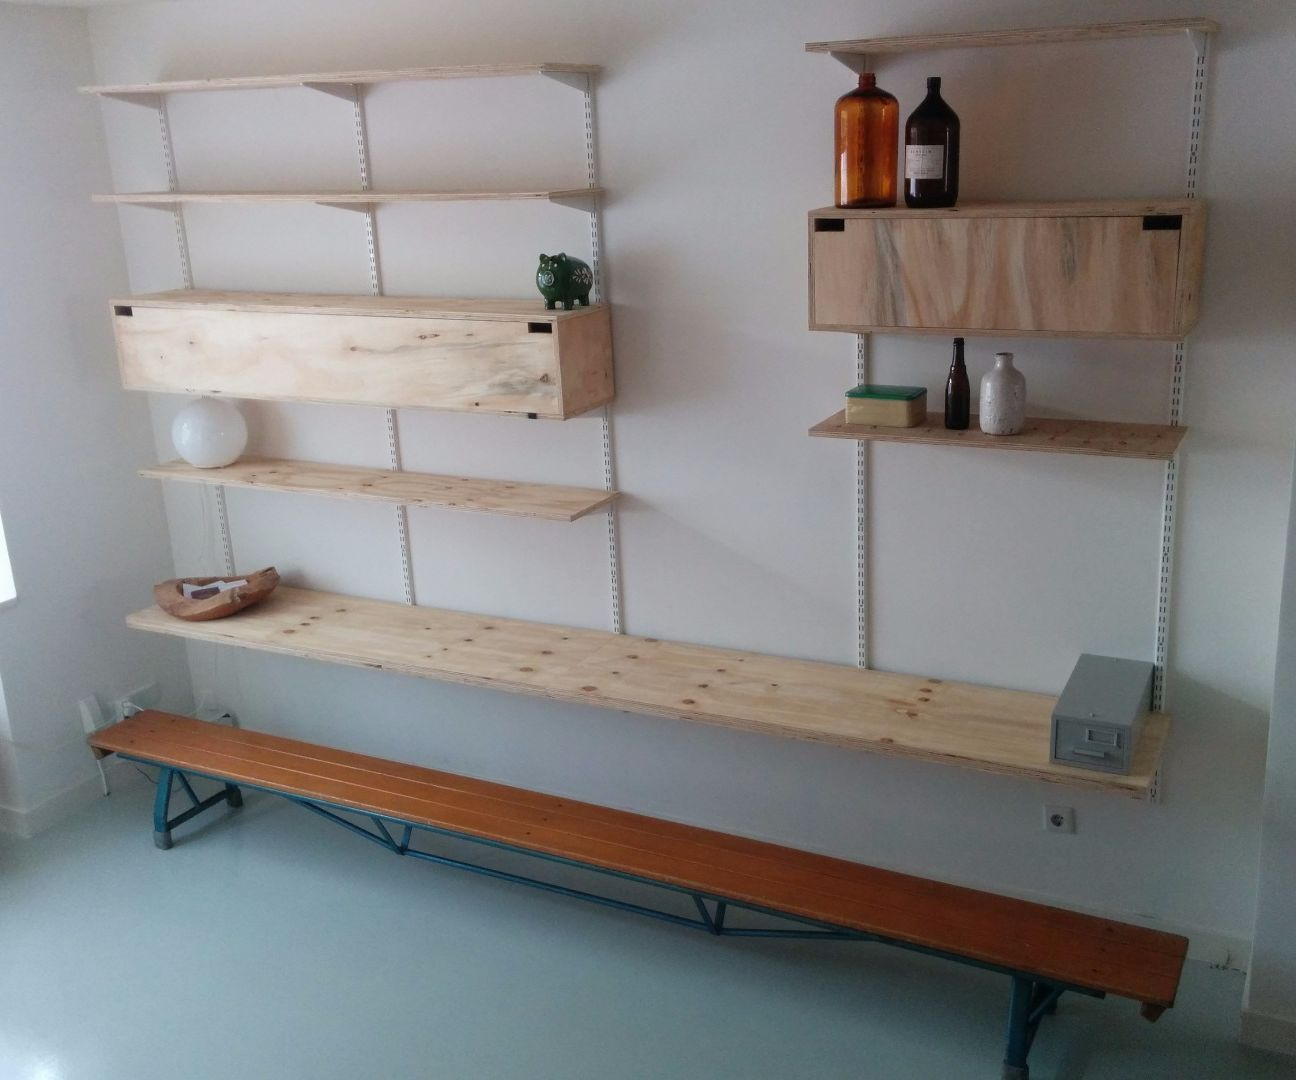 Mid Century Style Wall System Made Out of Plywood